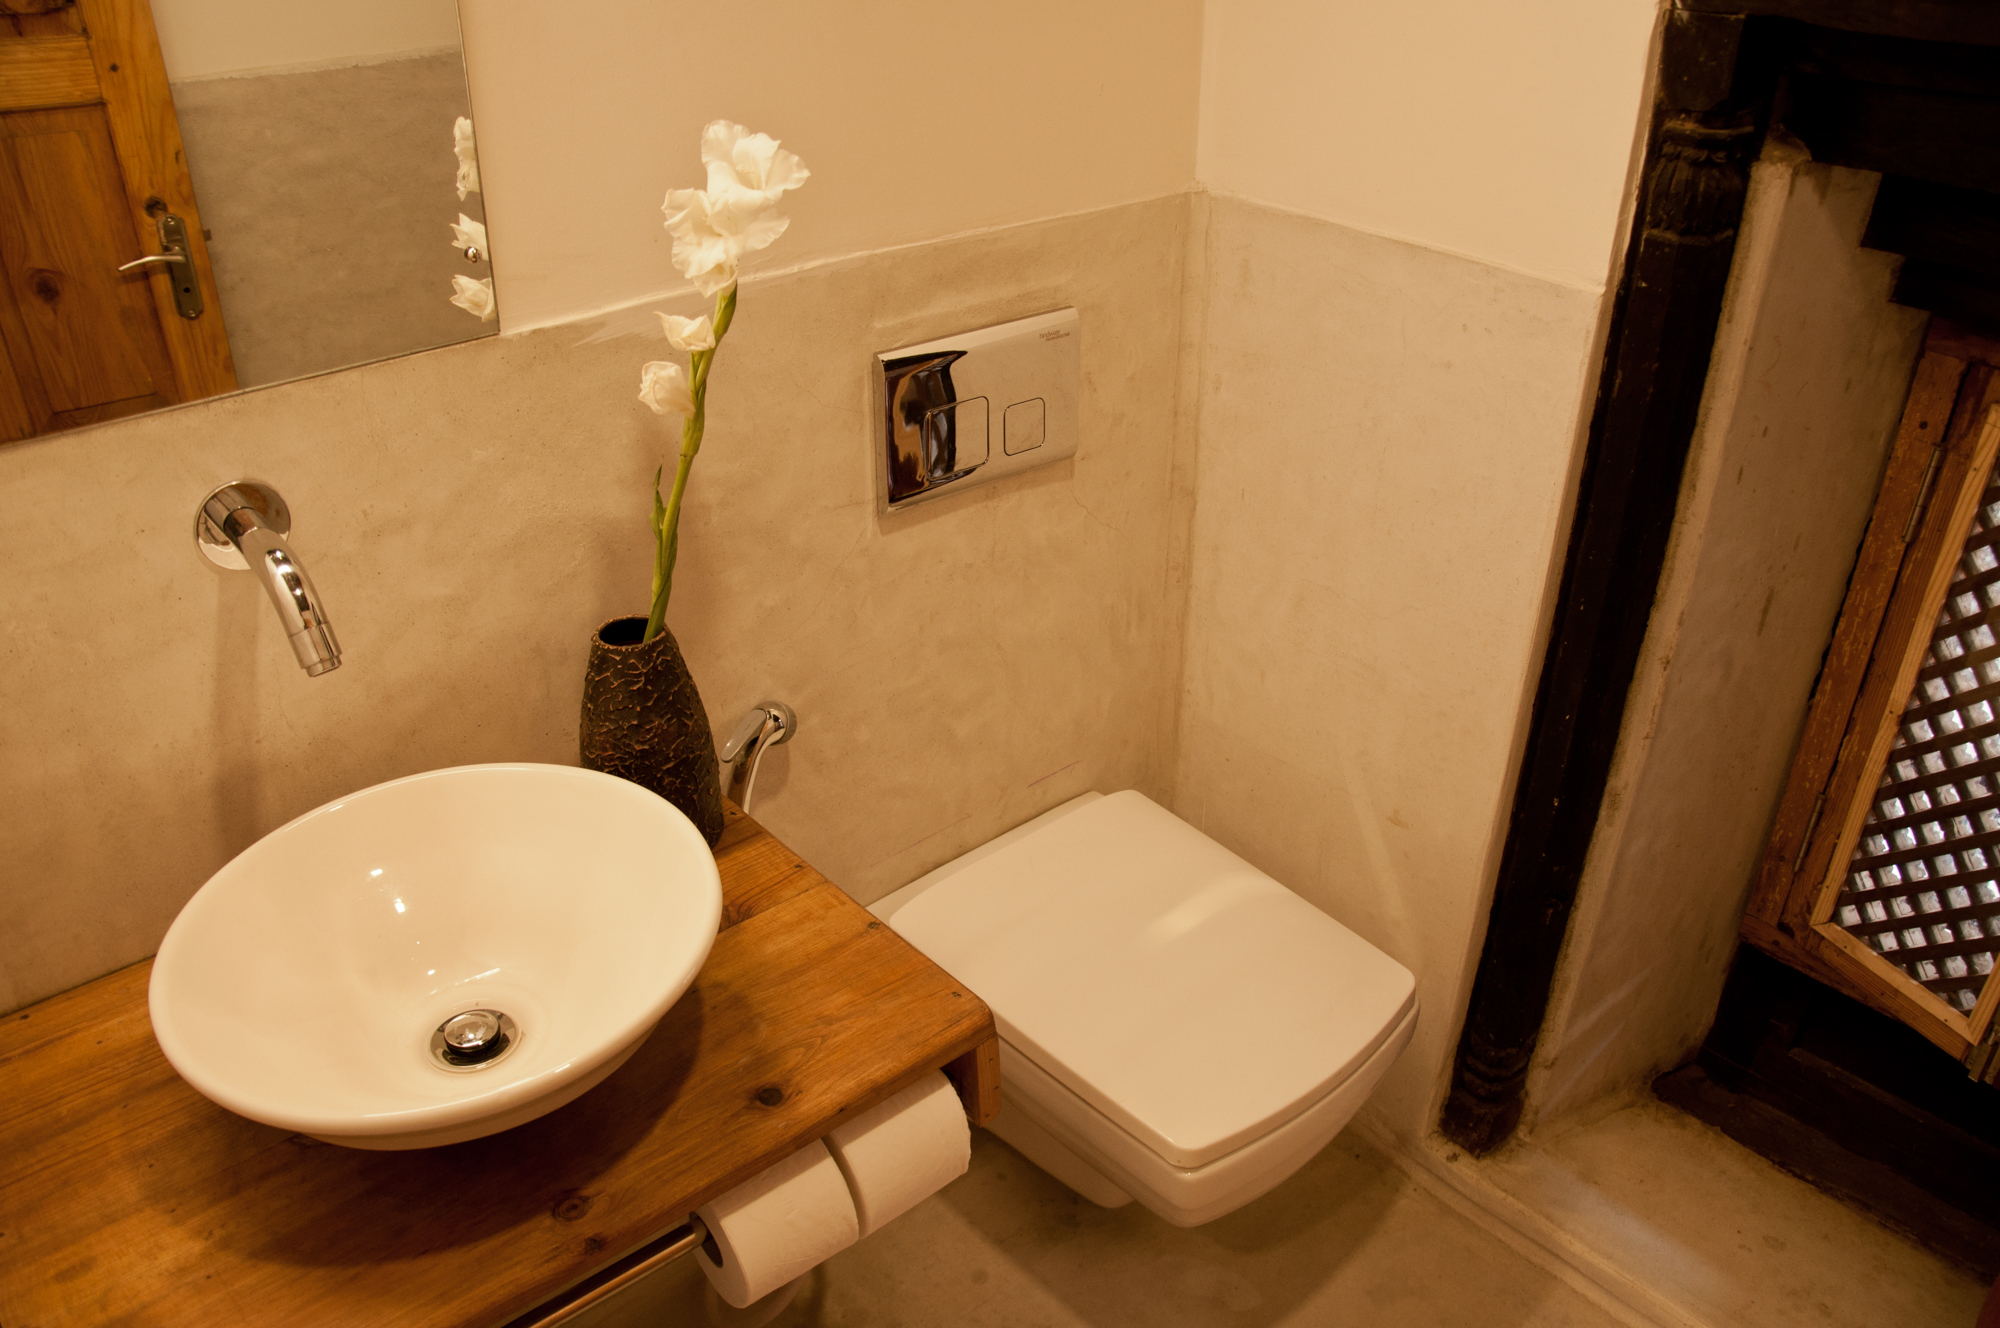 Bathroom and sink.